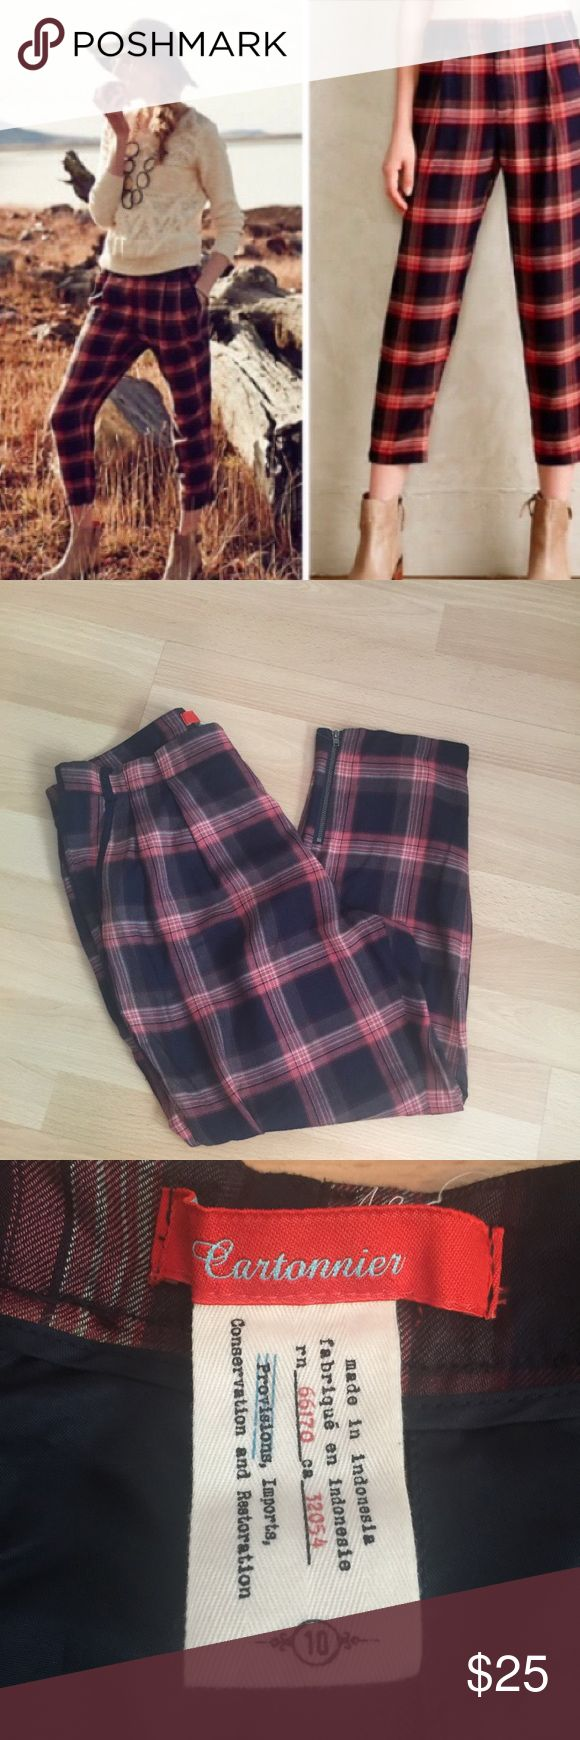 """RARE Anthropologie Cartonnier Tartan Crop Amazing pair of anthro pants! Gently used, only worn a couple times. Minor signs of gentle wear and wash. By combining feminine sensibilities with menswear-inspired materials and contemporary cuts, Cartonnier creates intellectual yet whimsical clothing. Case in point: this so-soft plaid pair, complete with ankle zip details.  Ankle zips Side, back welt pockets Polyester Machine wash Regular: 25.5""""L Anthropologie Pants Ankle & Cropped"""